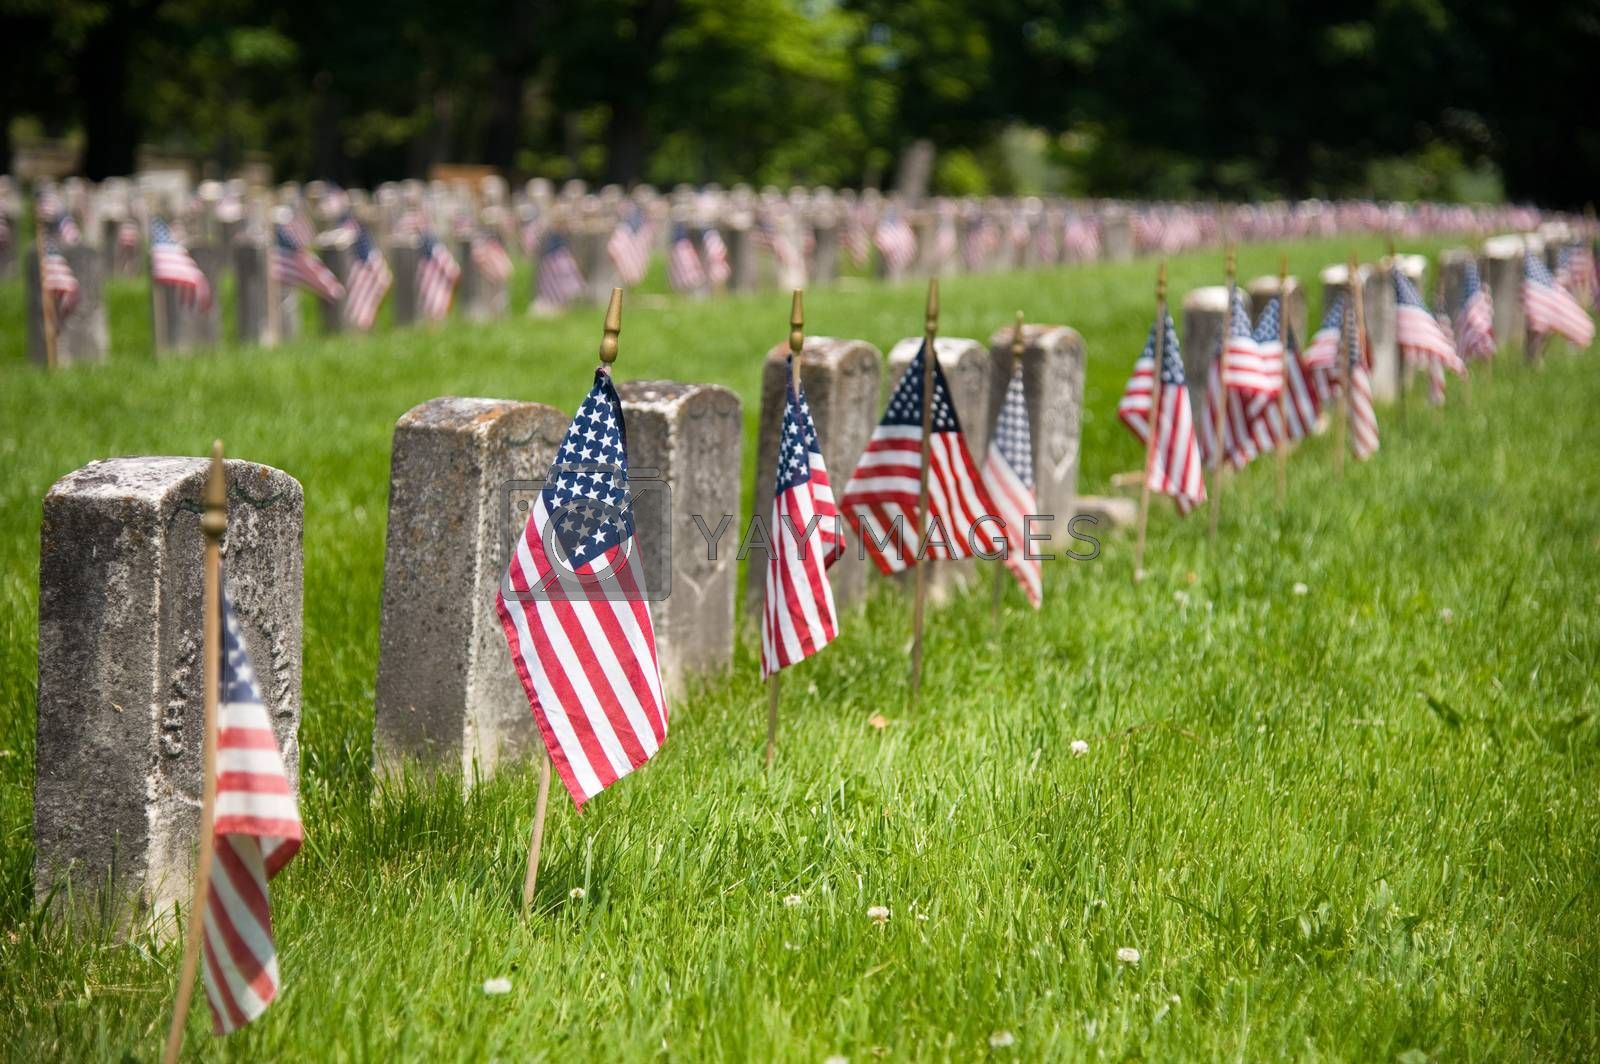 American Civil War cemetery with headstones and union flags